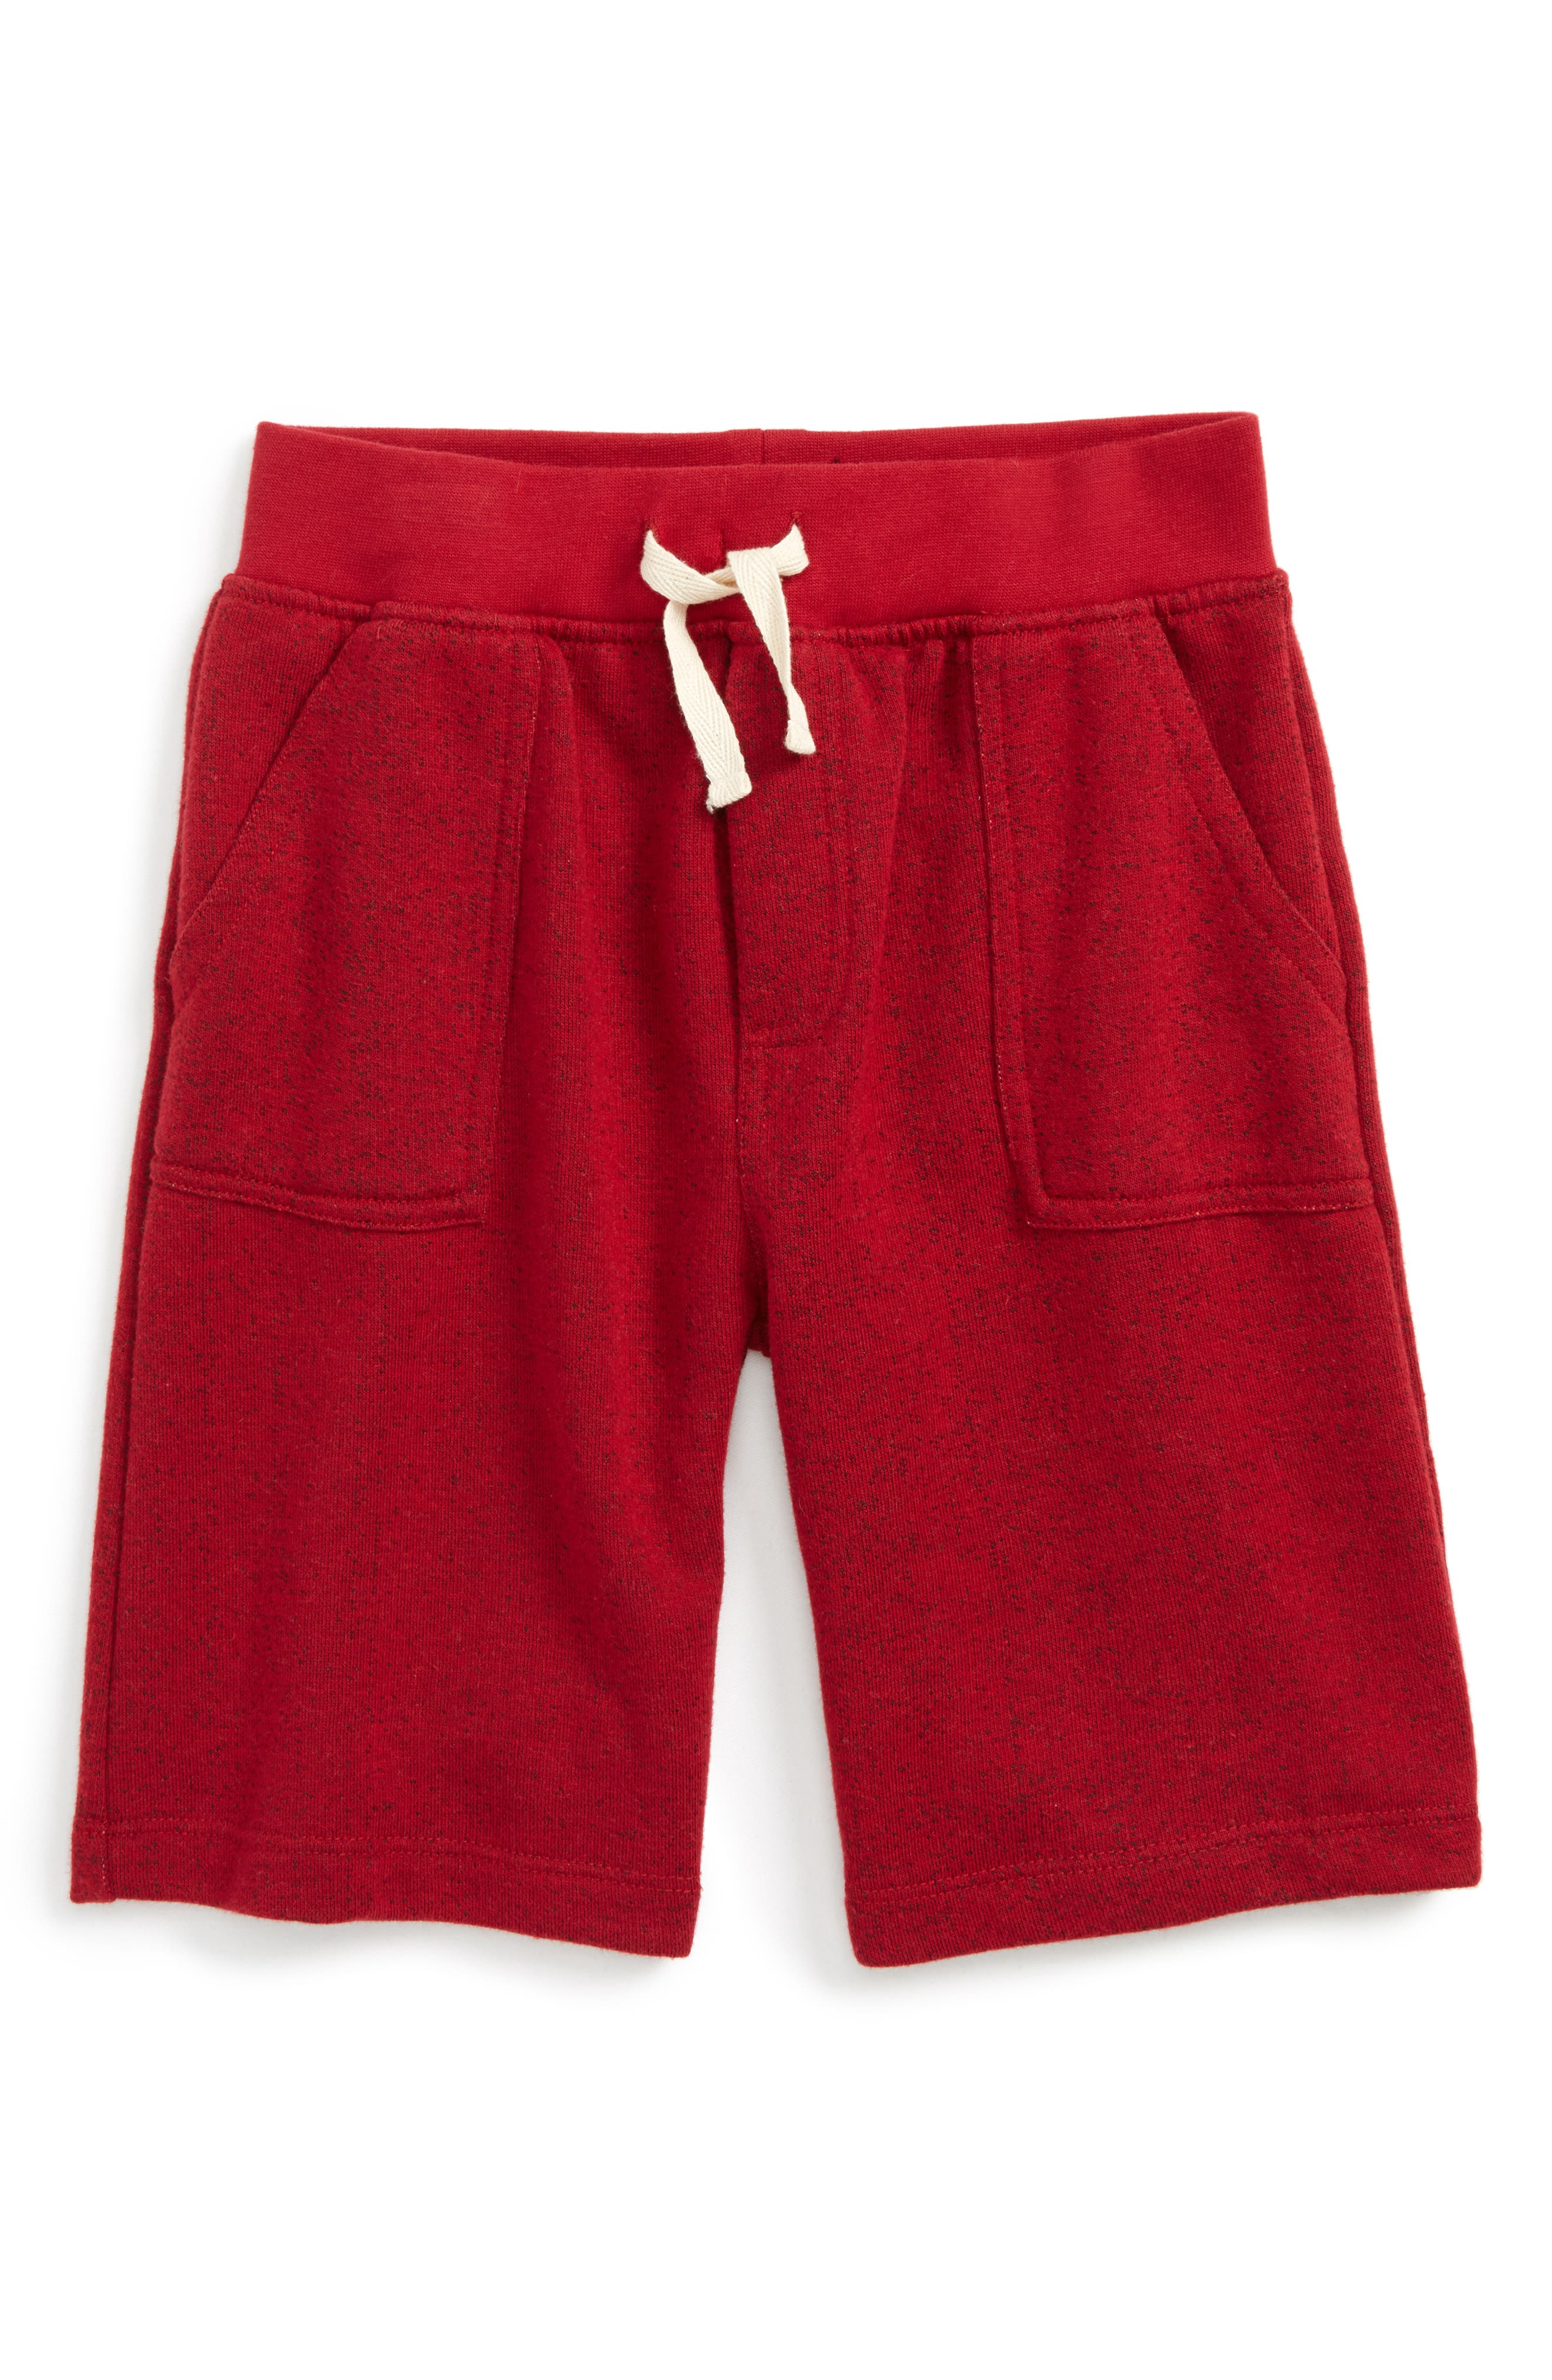 Stephen Shorts,                         Main,                         color, Burgundy